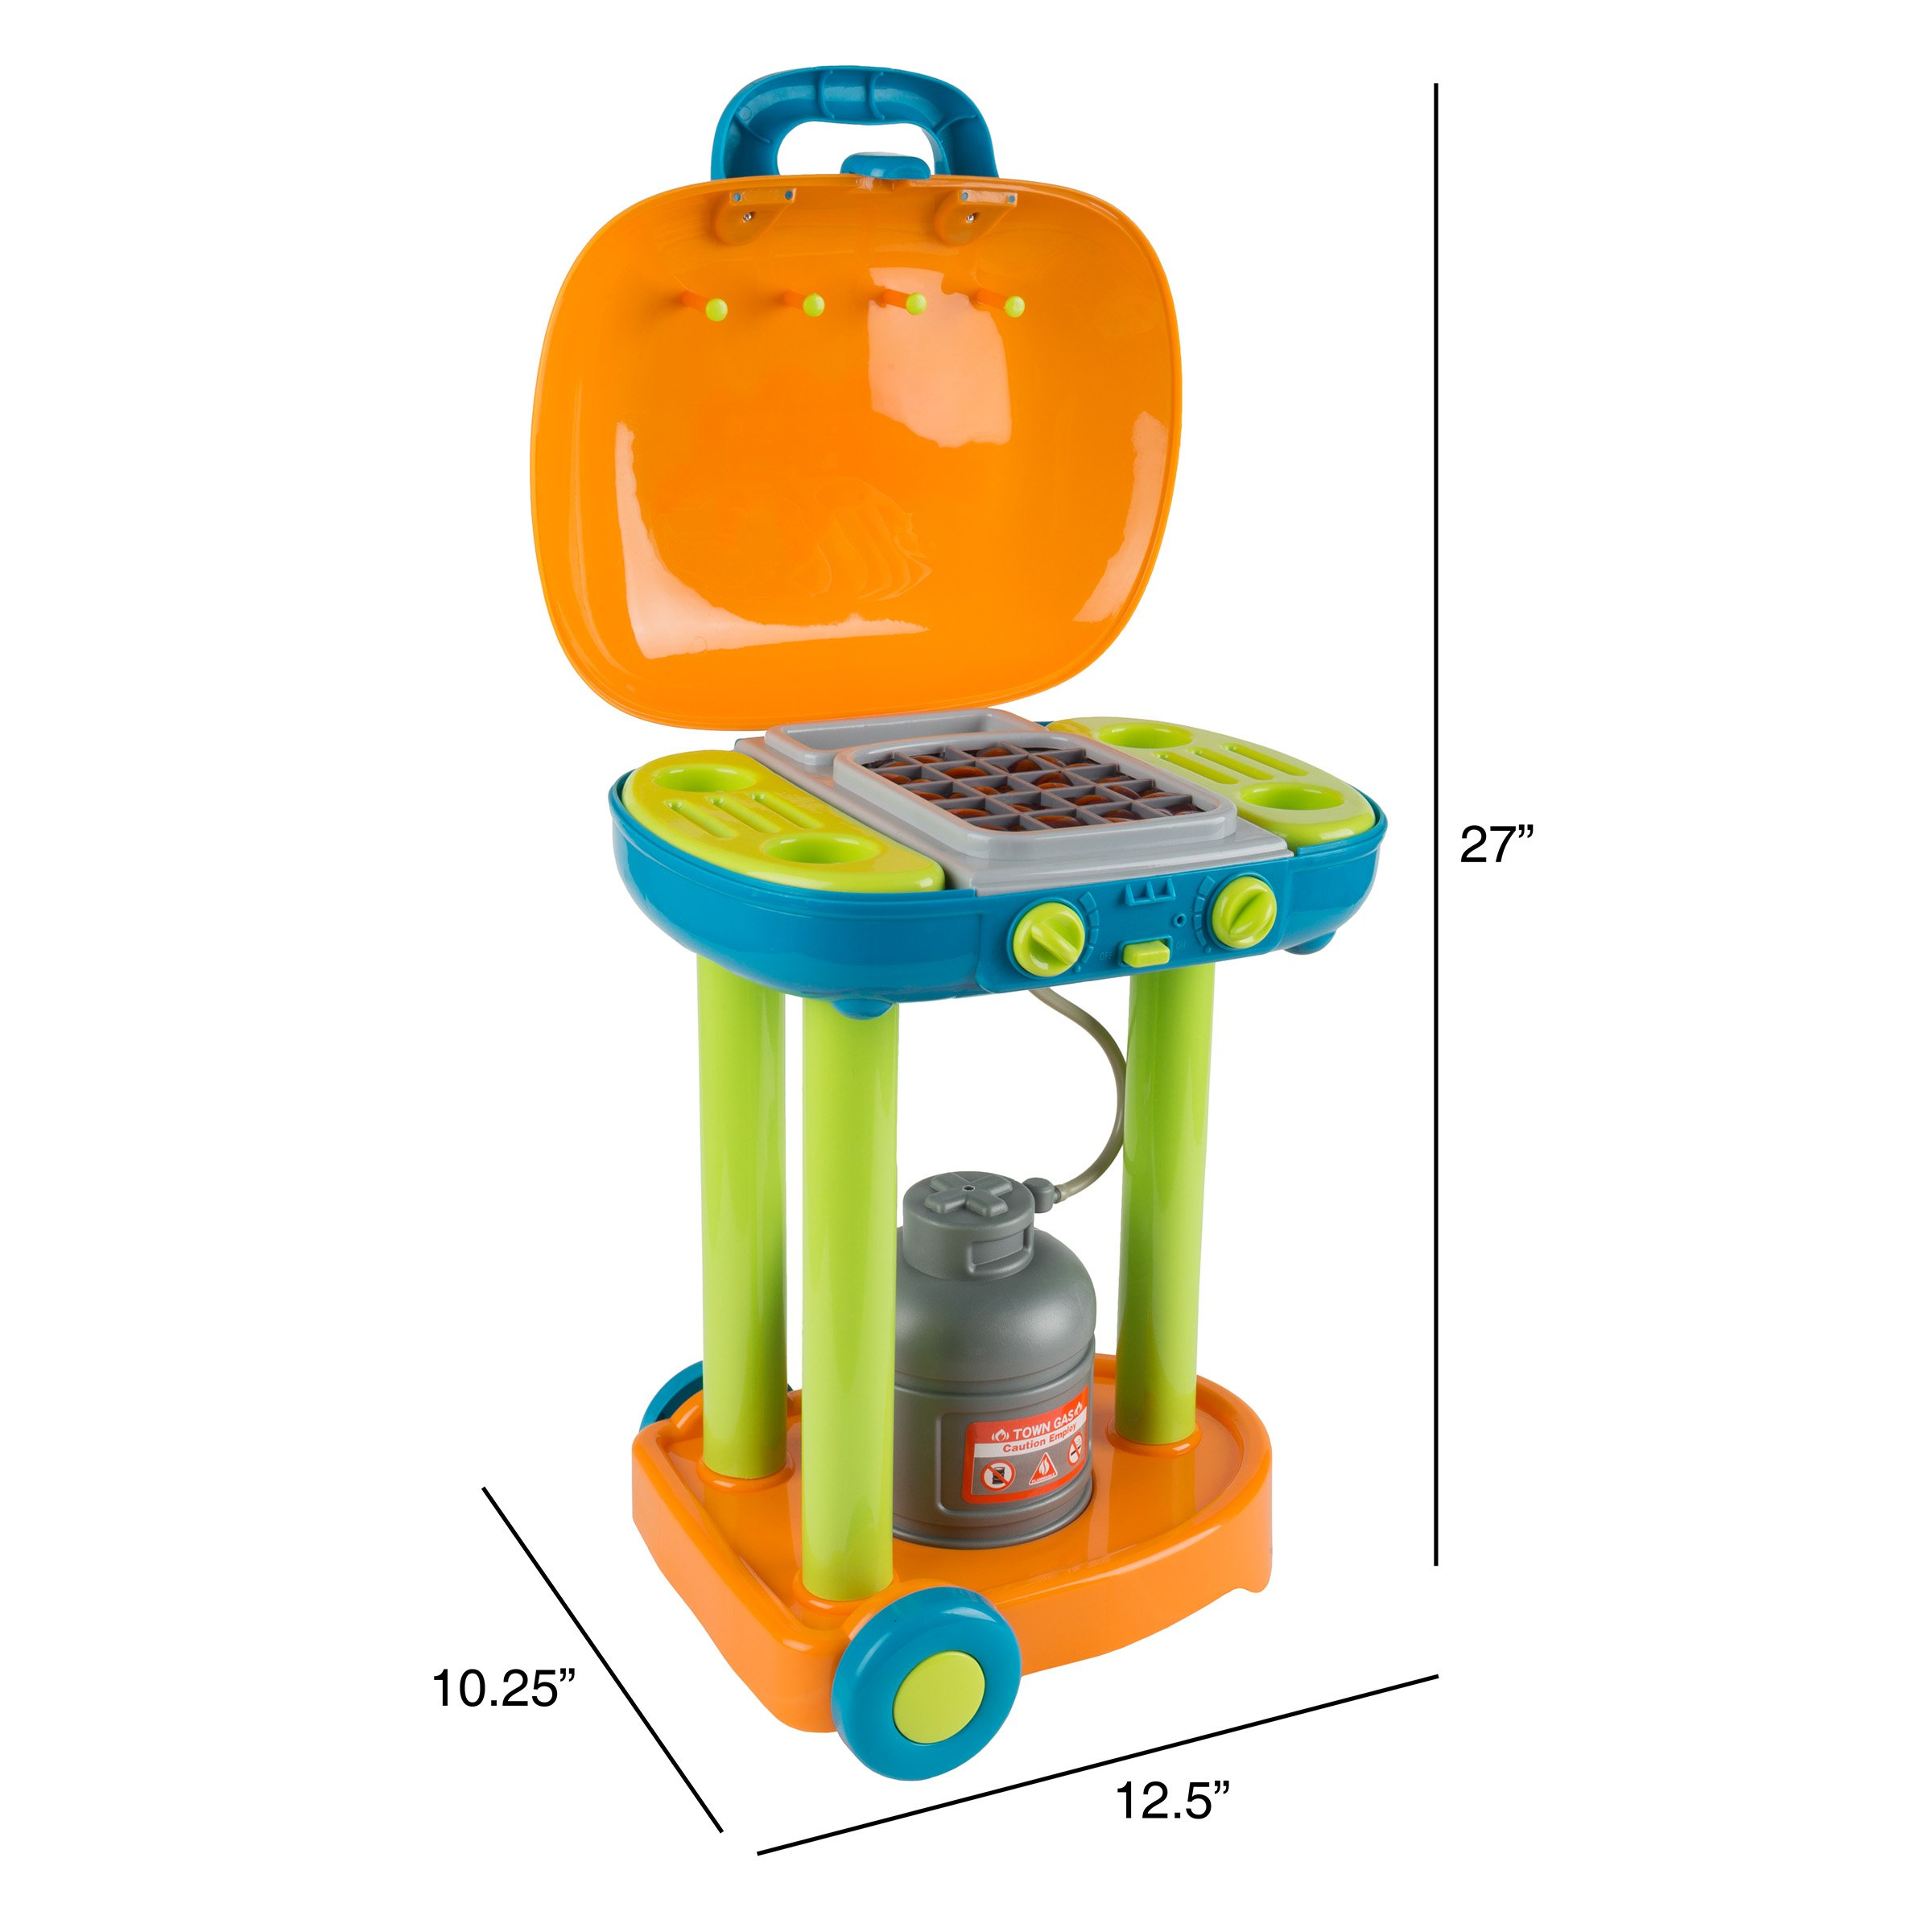 BBQ Grill Toy Set- Kids Dinner Playset with Realistic Sounds and Grate Lights- Includes Barbecue Food and Accessories, Pretend Kitchen by Hey! Play! (Image #2)